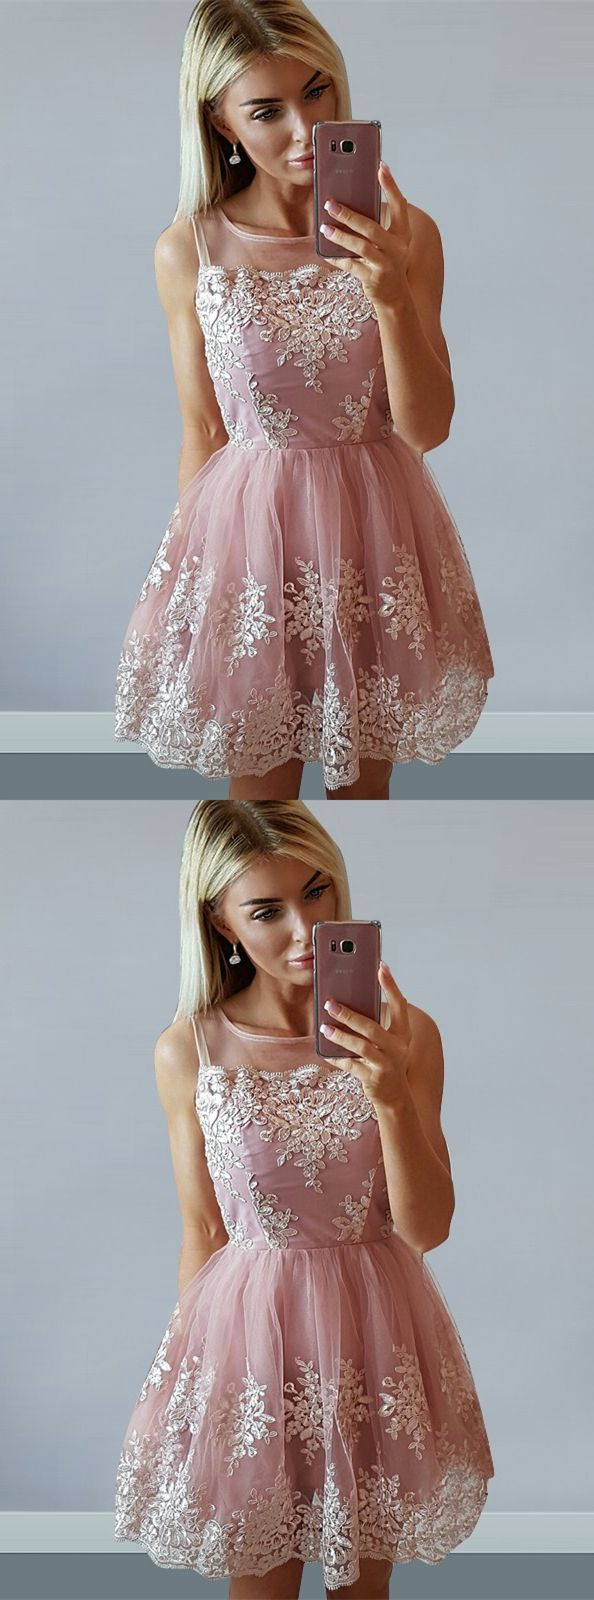 modest blush lace homecoming party dresses, short fashion prom gowns, semi formal dresses, homecoming dresses 2017